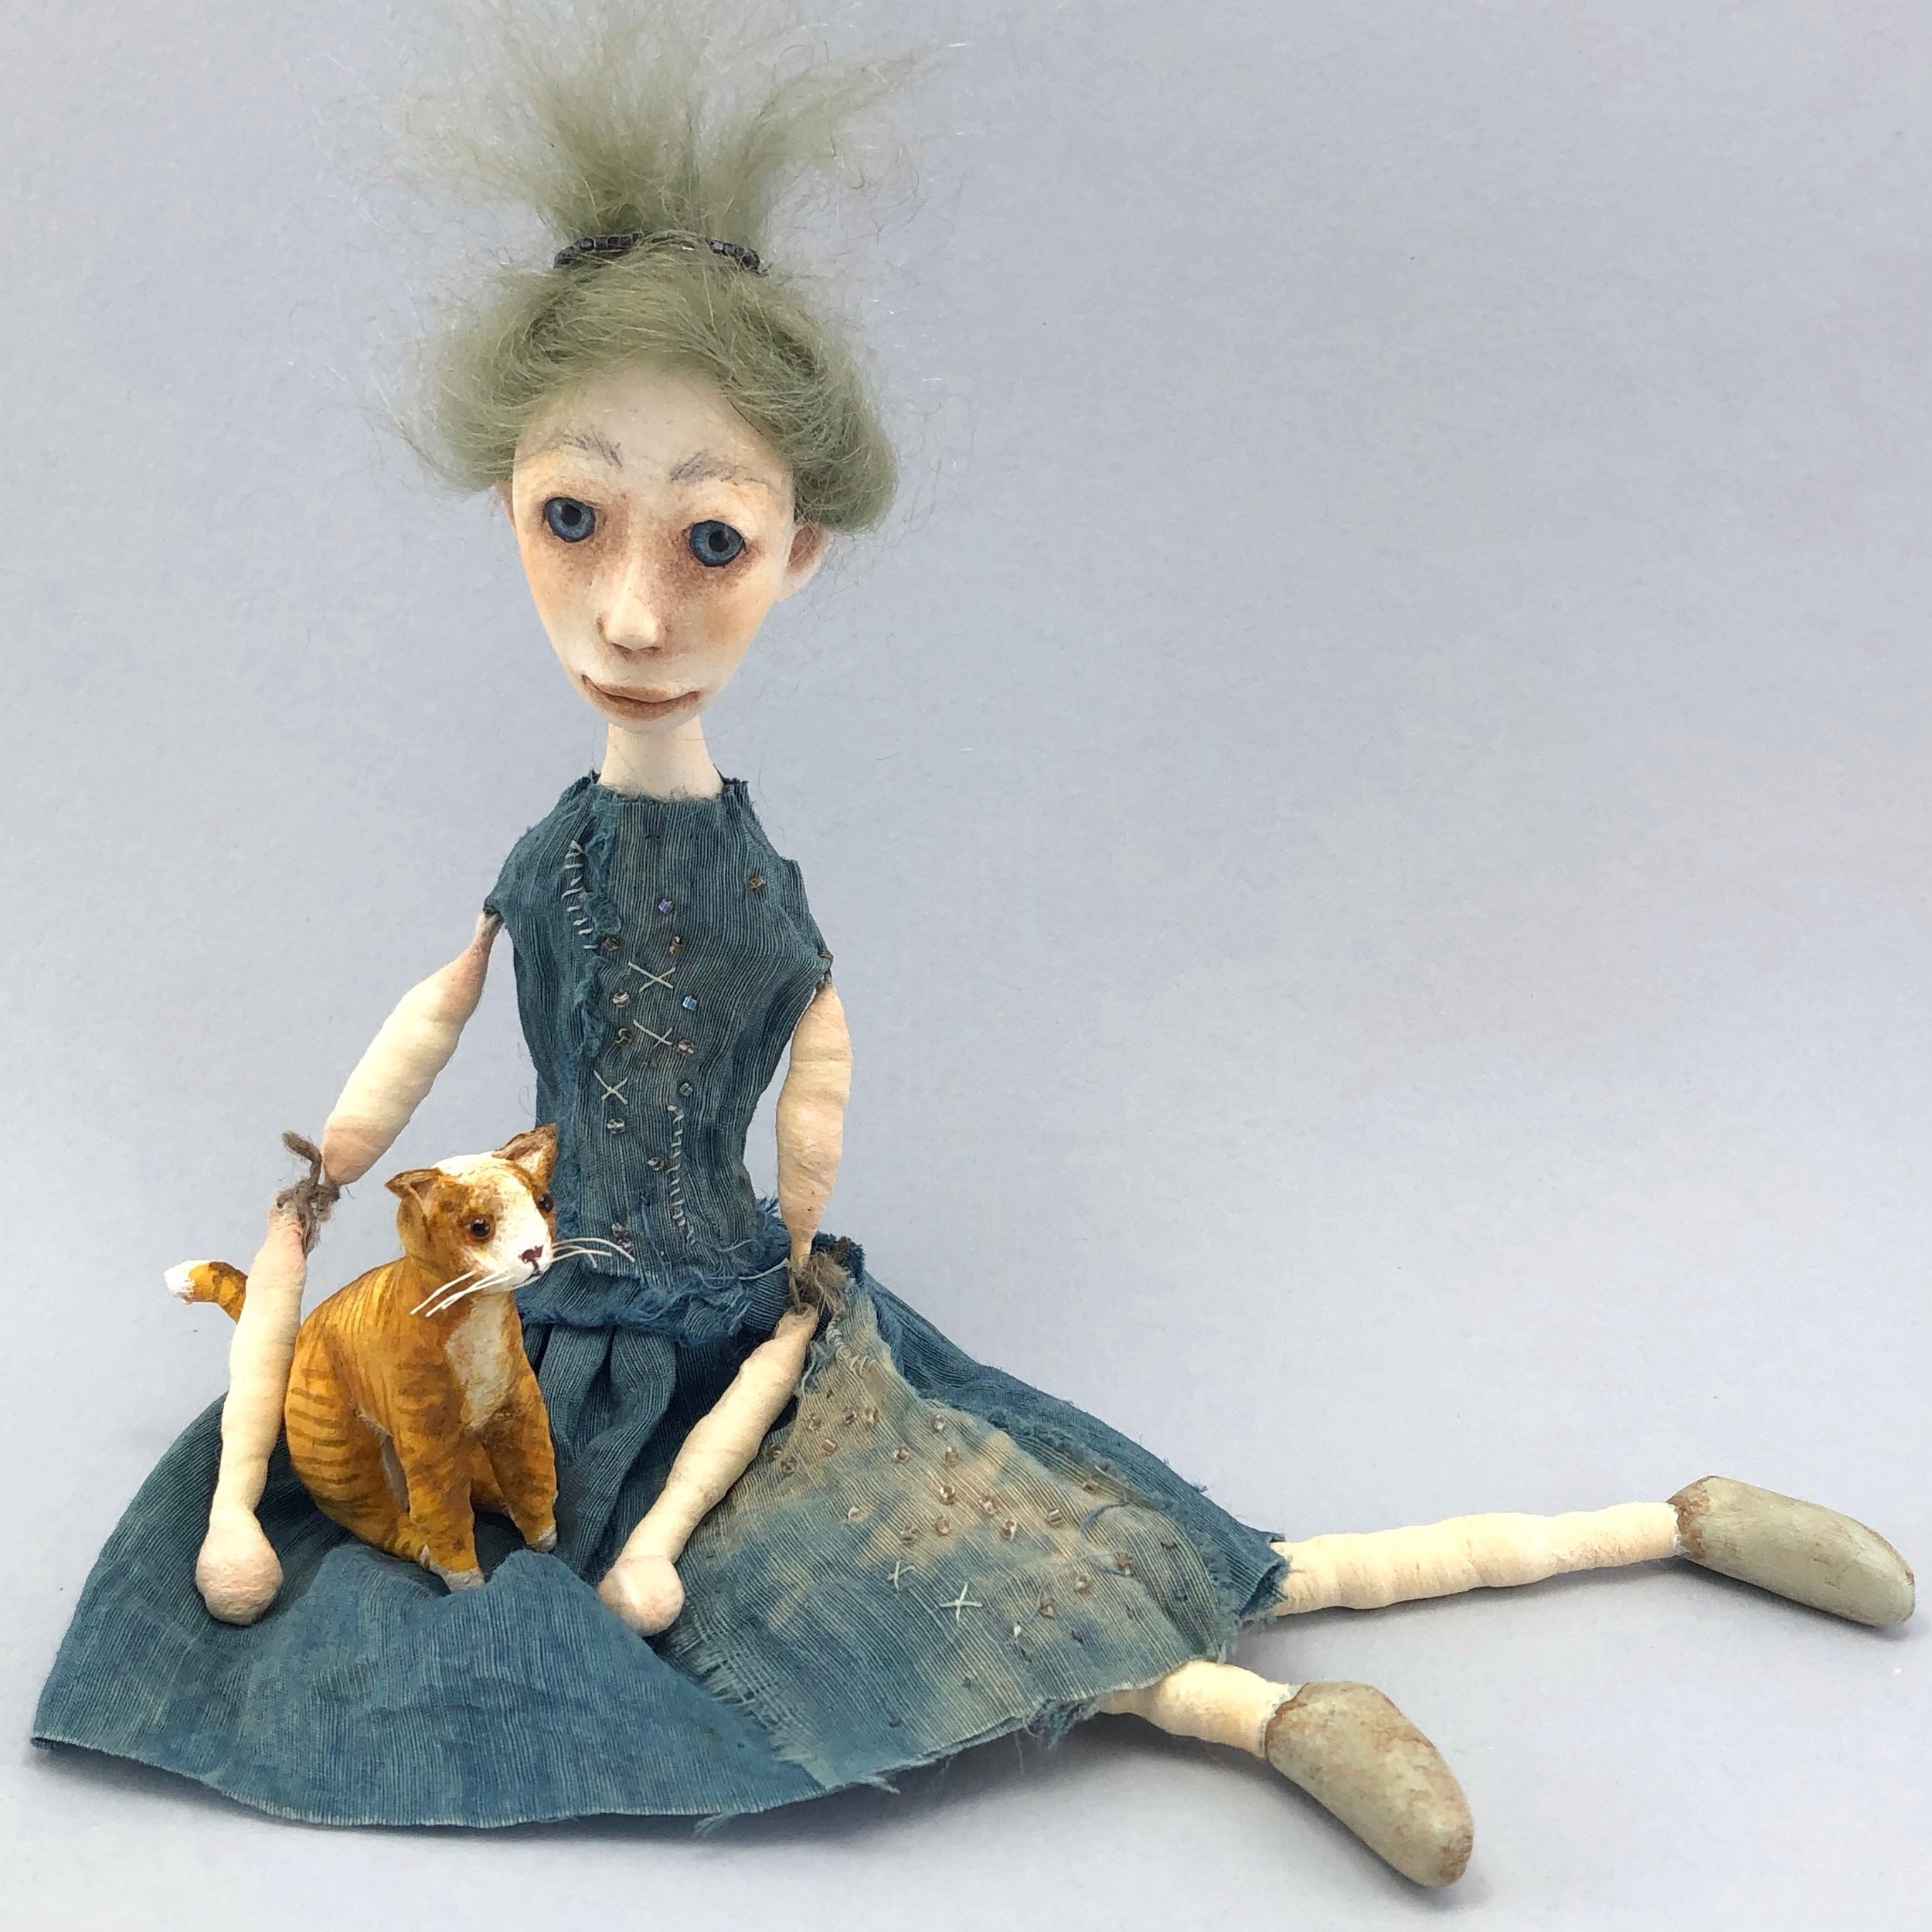 EmmaJean and Rusty - sold!  thank you